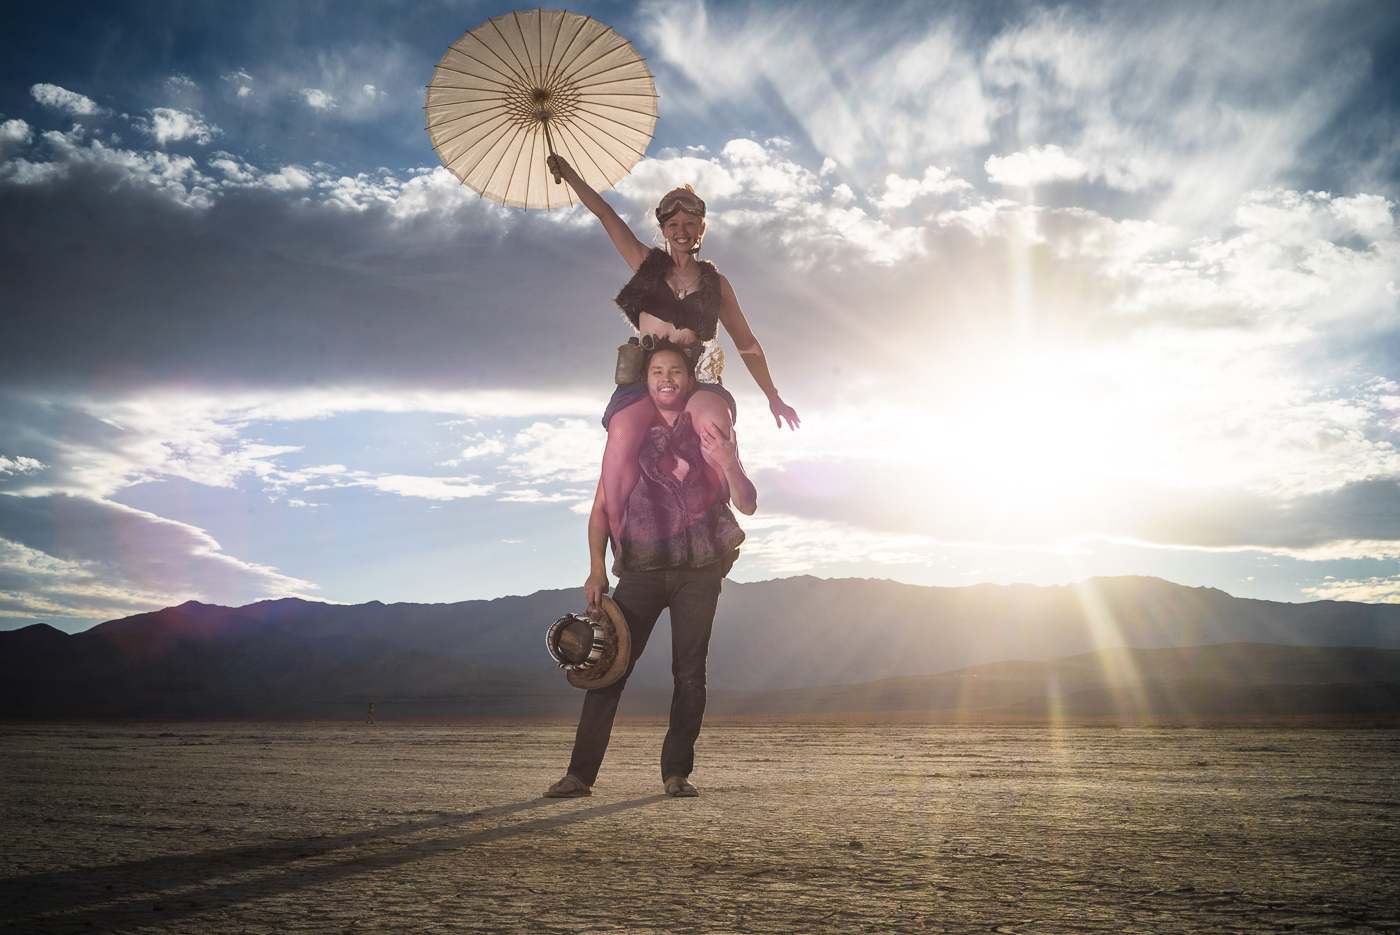 Burning Man 2014: Portraits of a Camp portraits on northtosouth.us